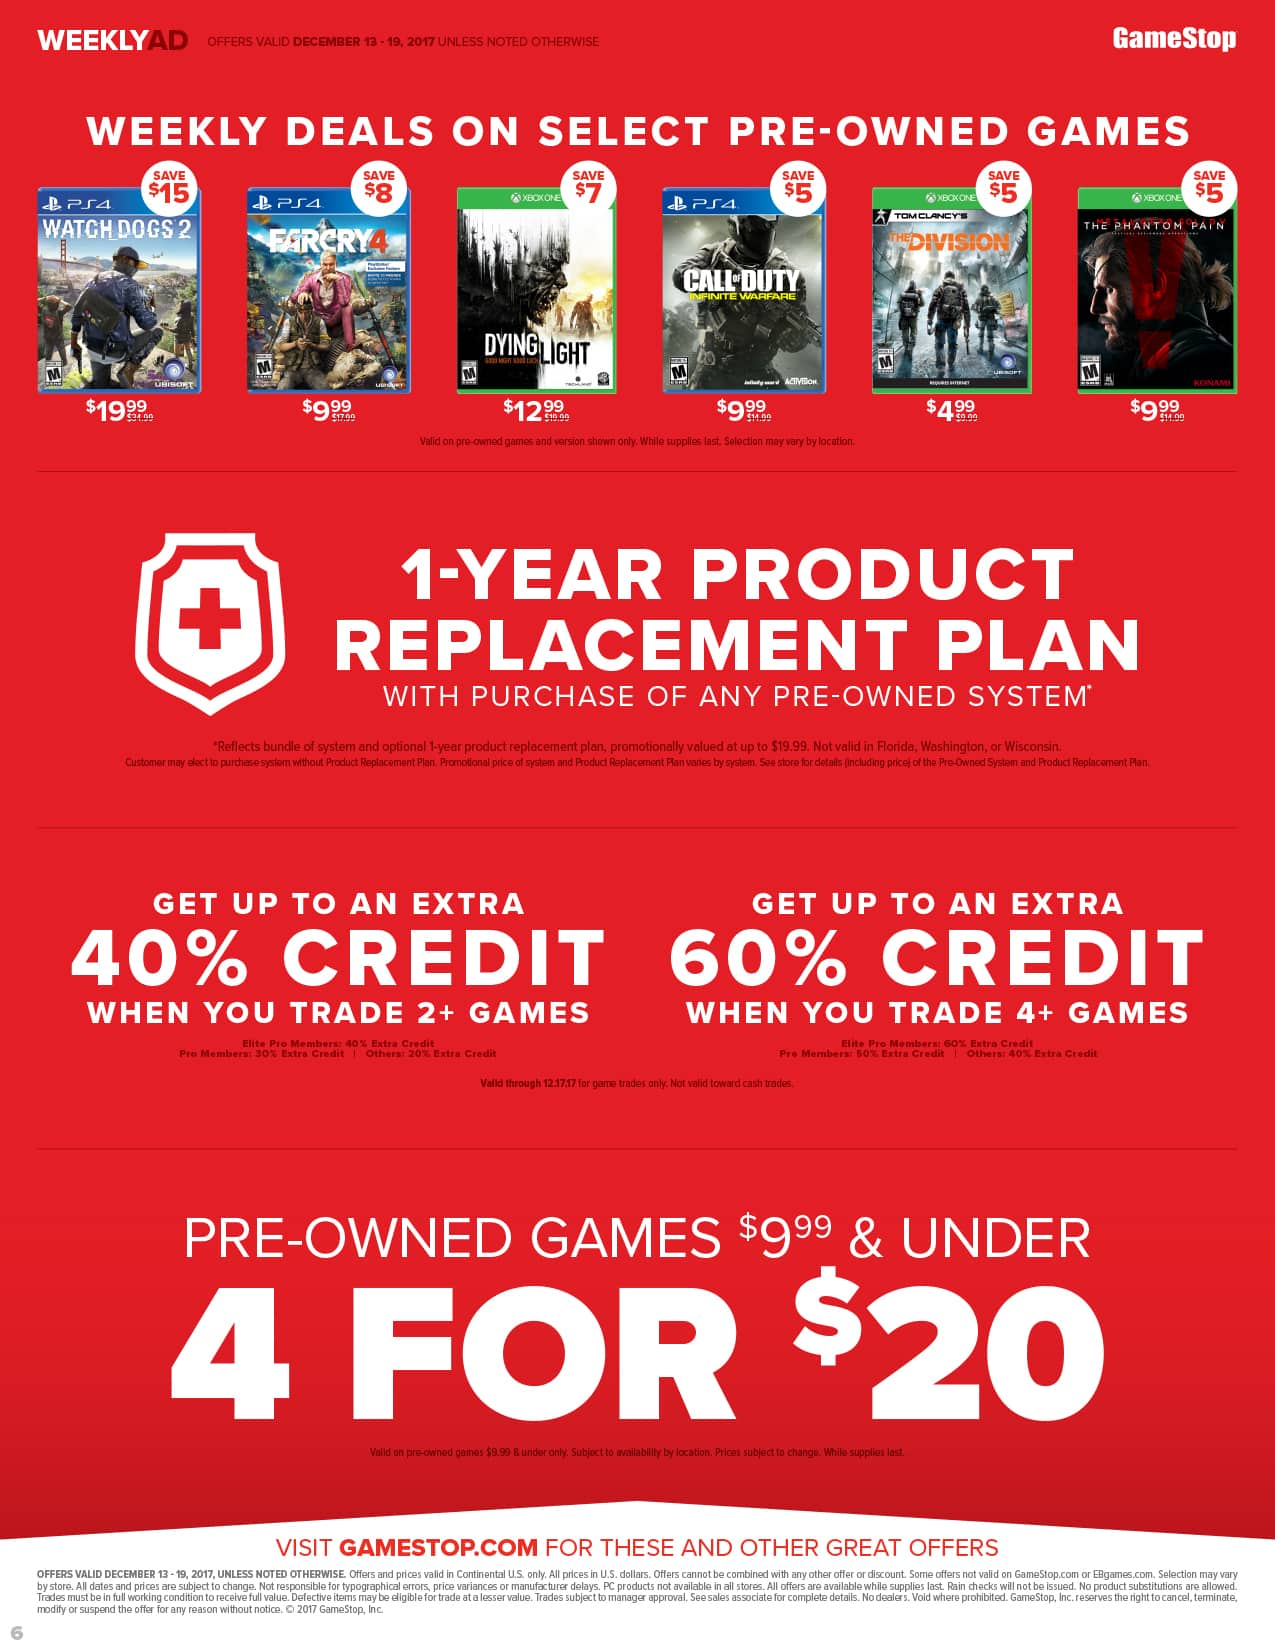 4 for $20 on all pre-owned games $9.99 and under. Notable used $9.99 sale games: PS4 Far Cry 4, PS4 COD Infinite Warfare, or XB1 MGS V. XB1 The Division for $5 at Gamestop